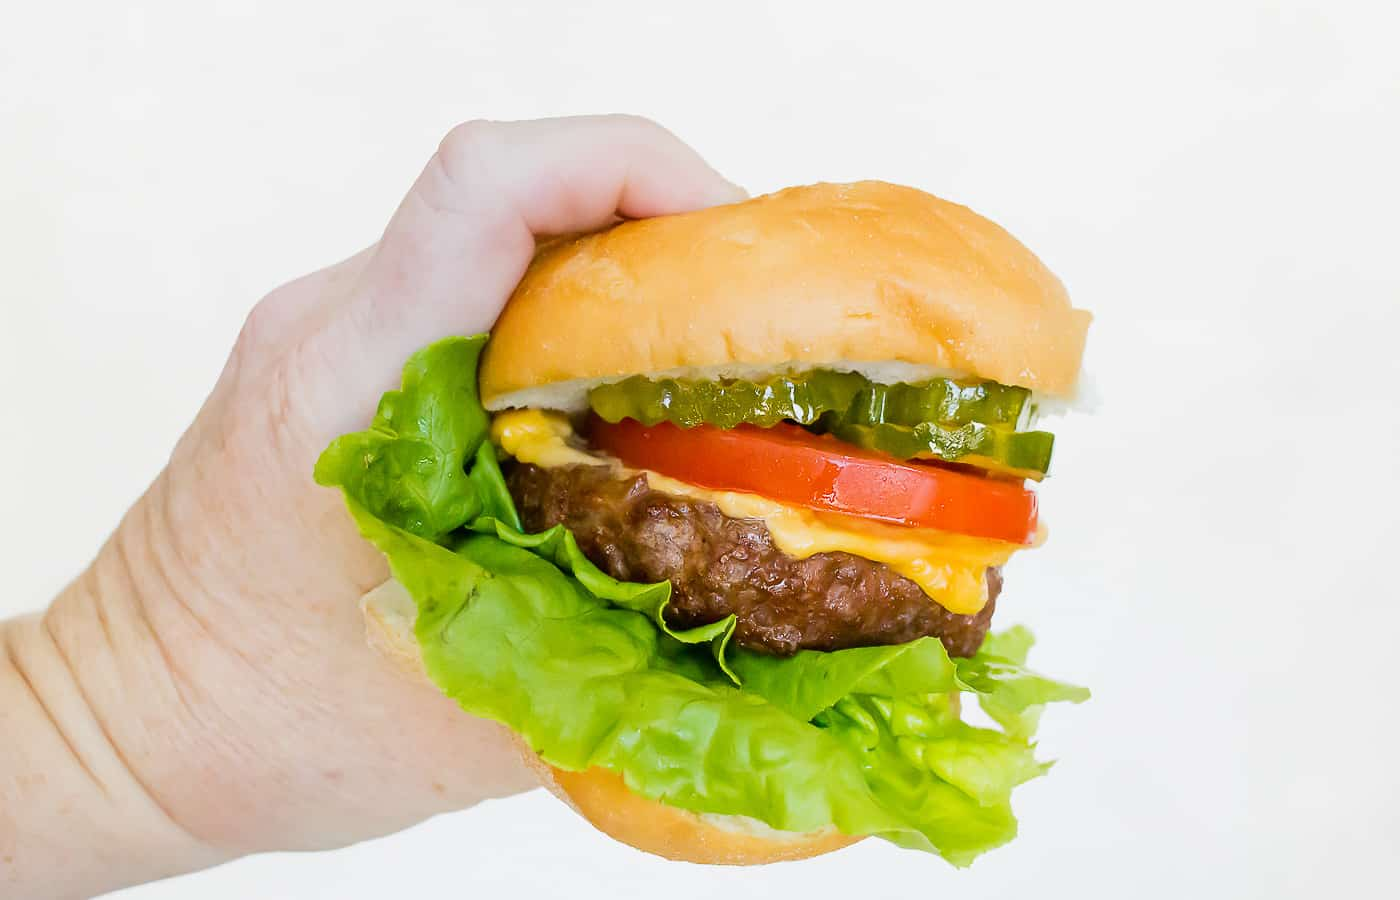 a hand holding a cheeseburger with lettuce, tomato, and pickles on a tan bun